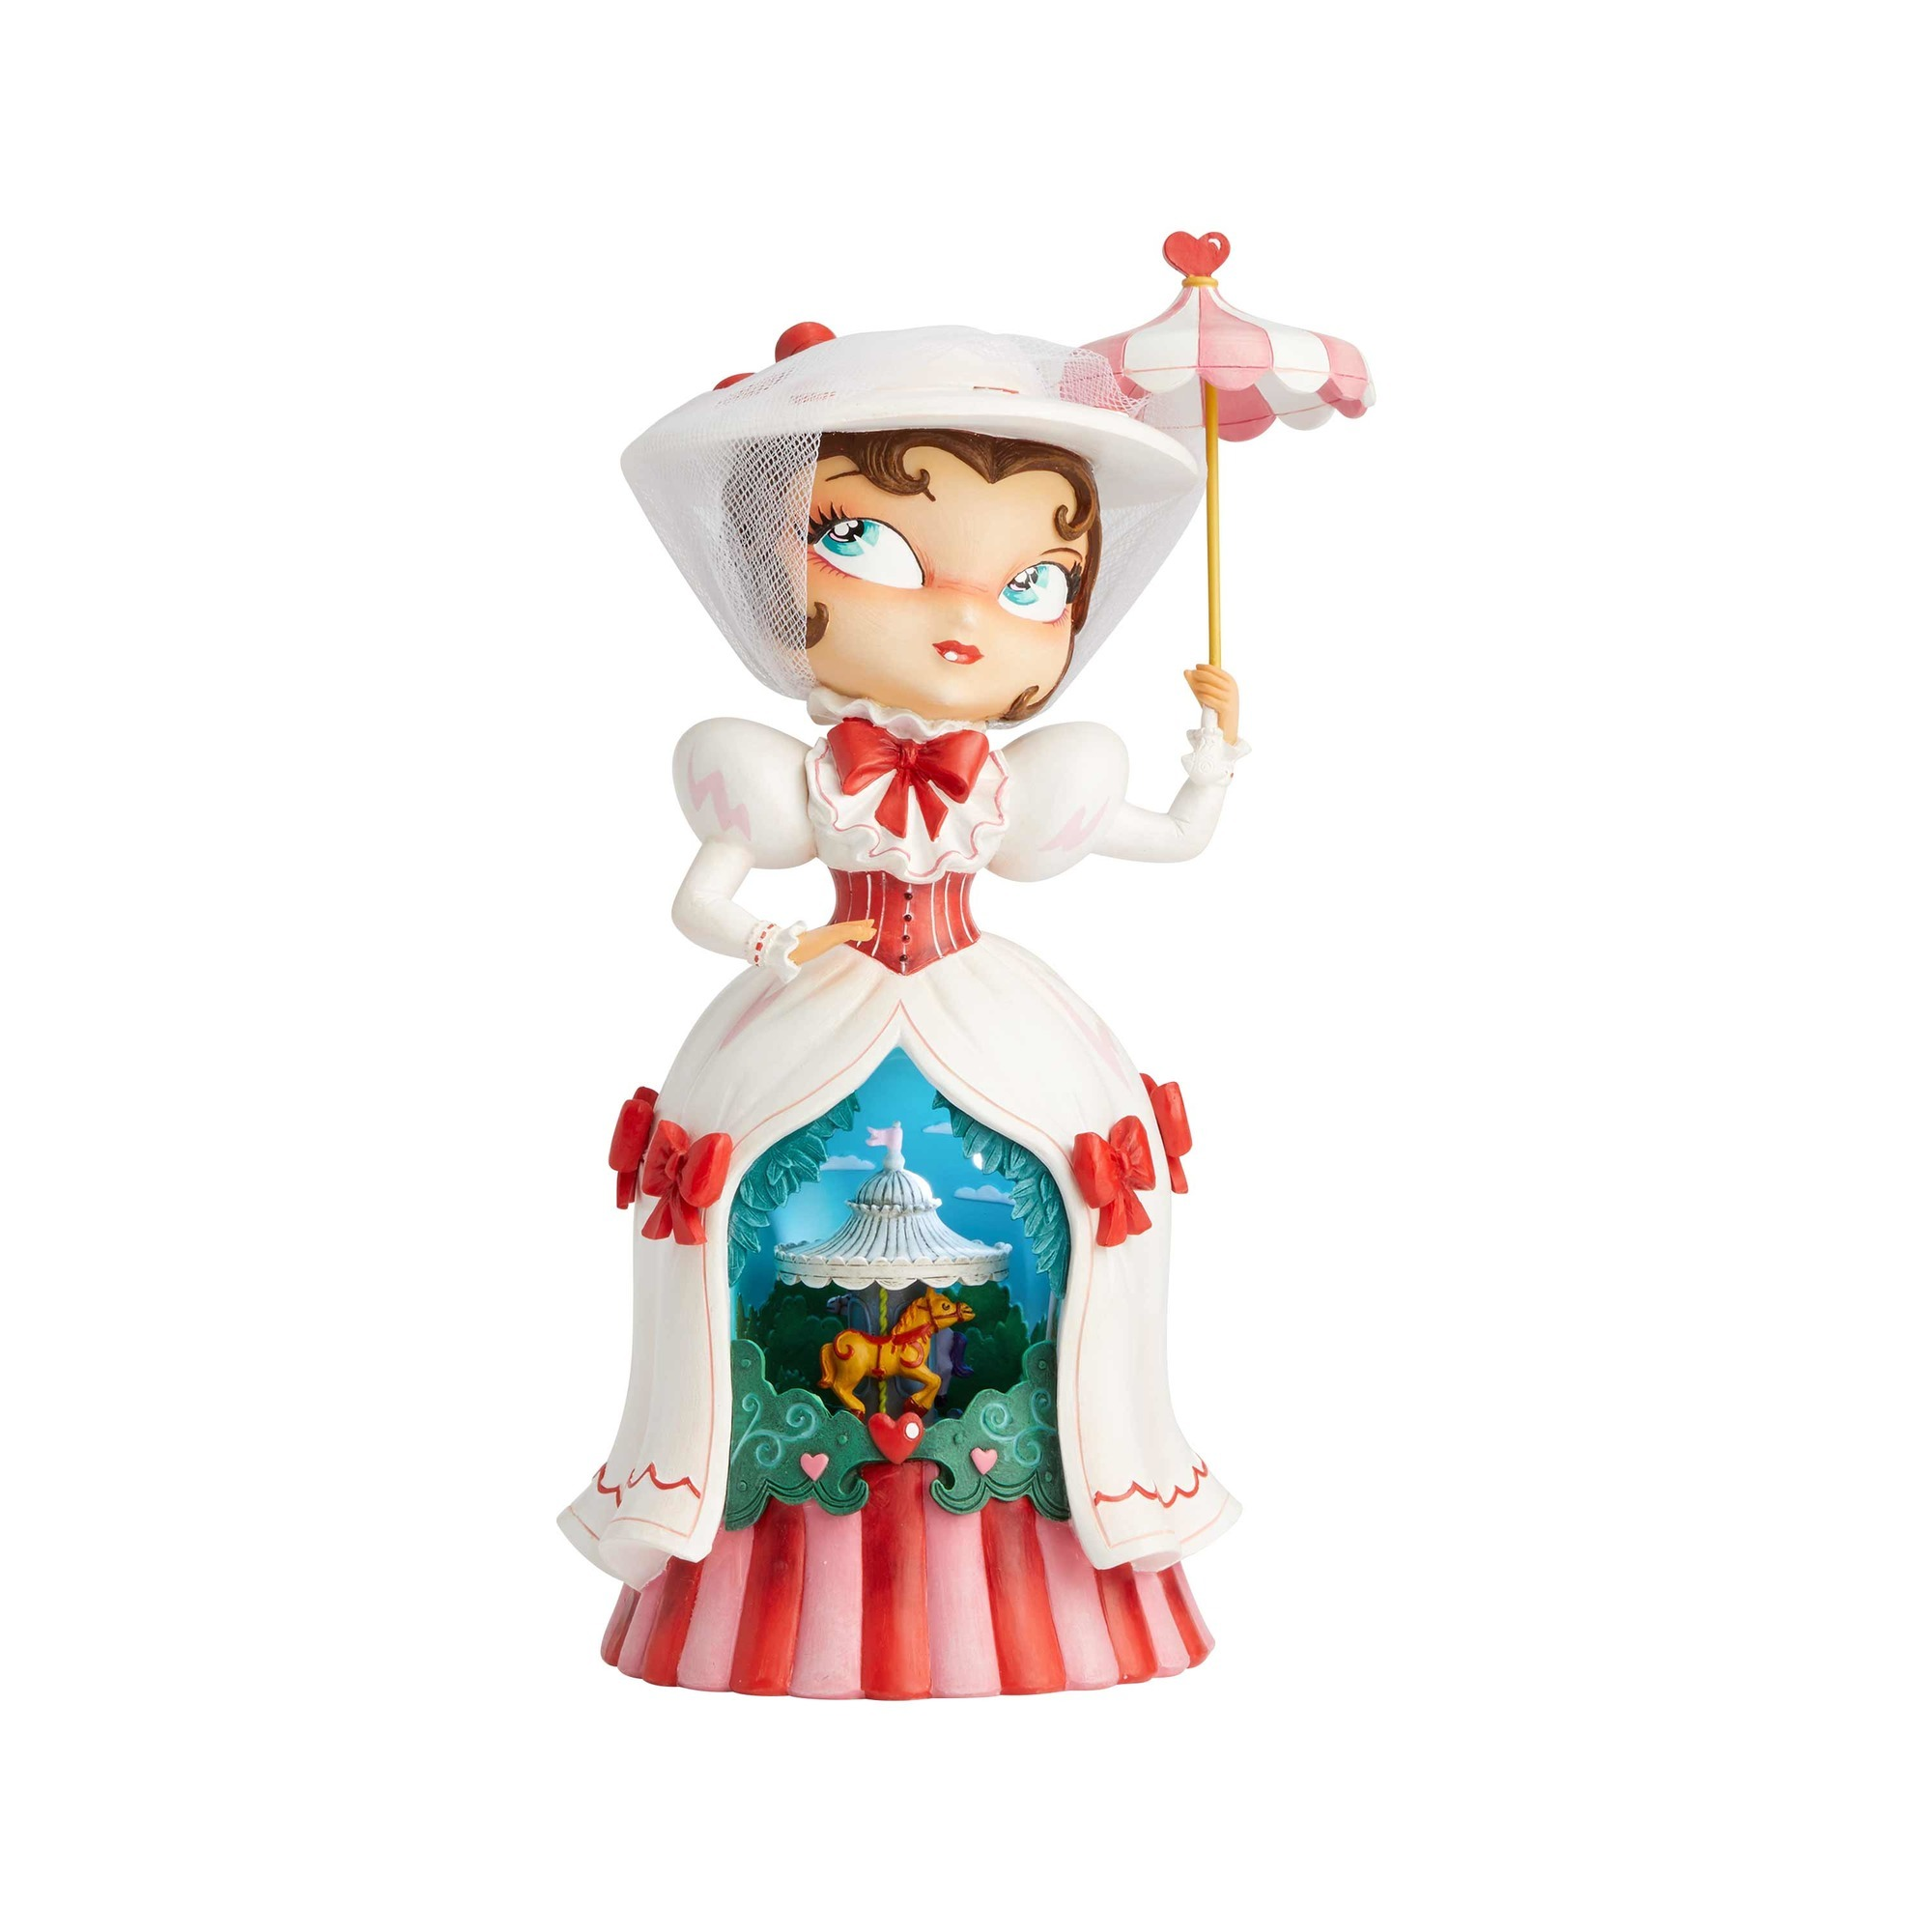 World of Miss Mindy 6001671N Mary Poppins